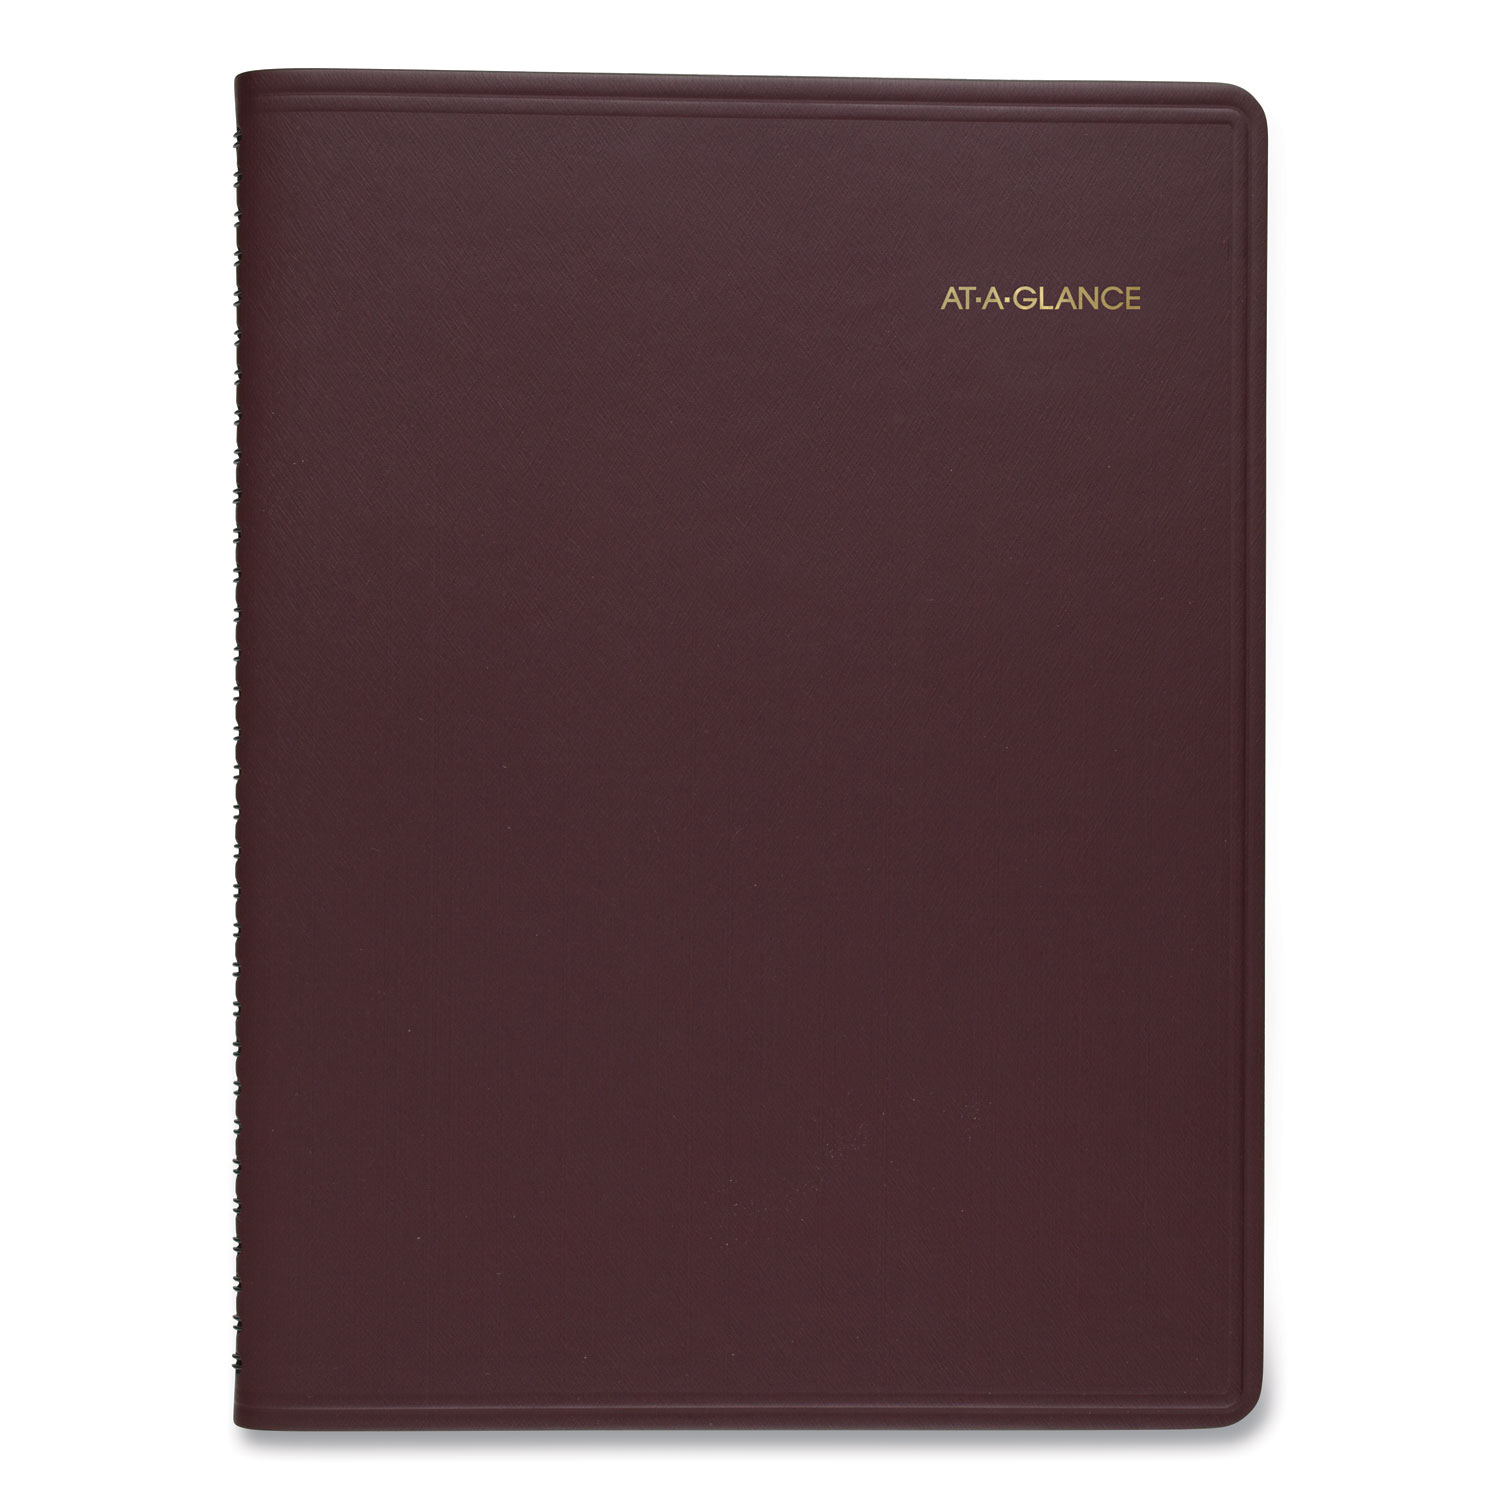 Weekly Appointment Book, 11 x 8.25, Winestone, 2021-2022